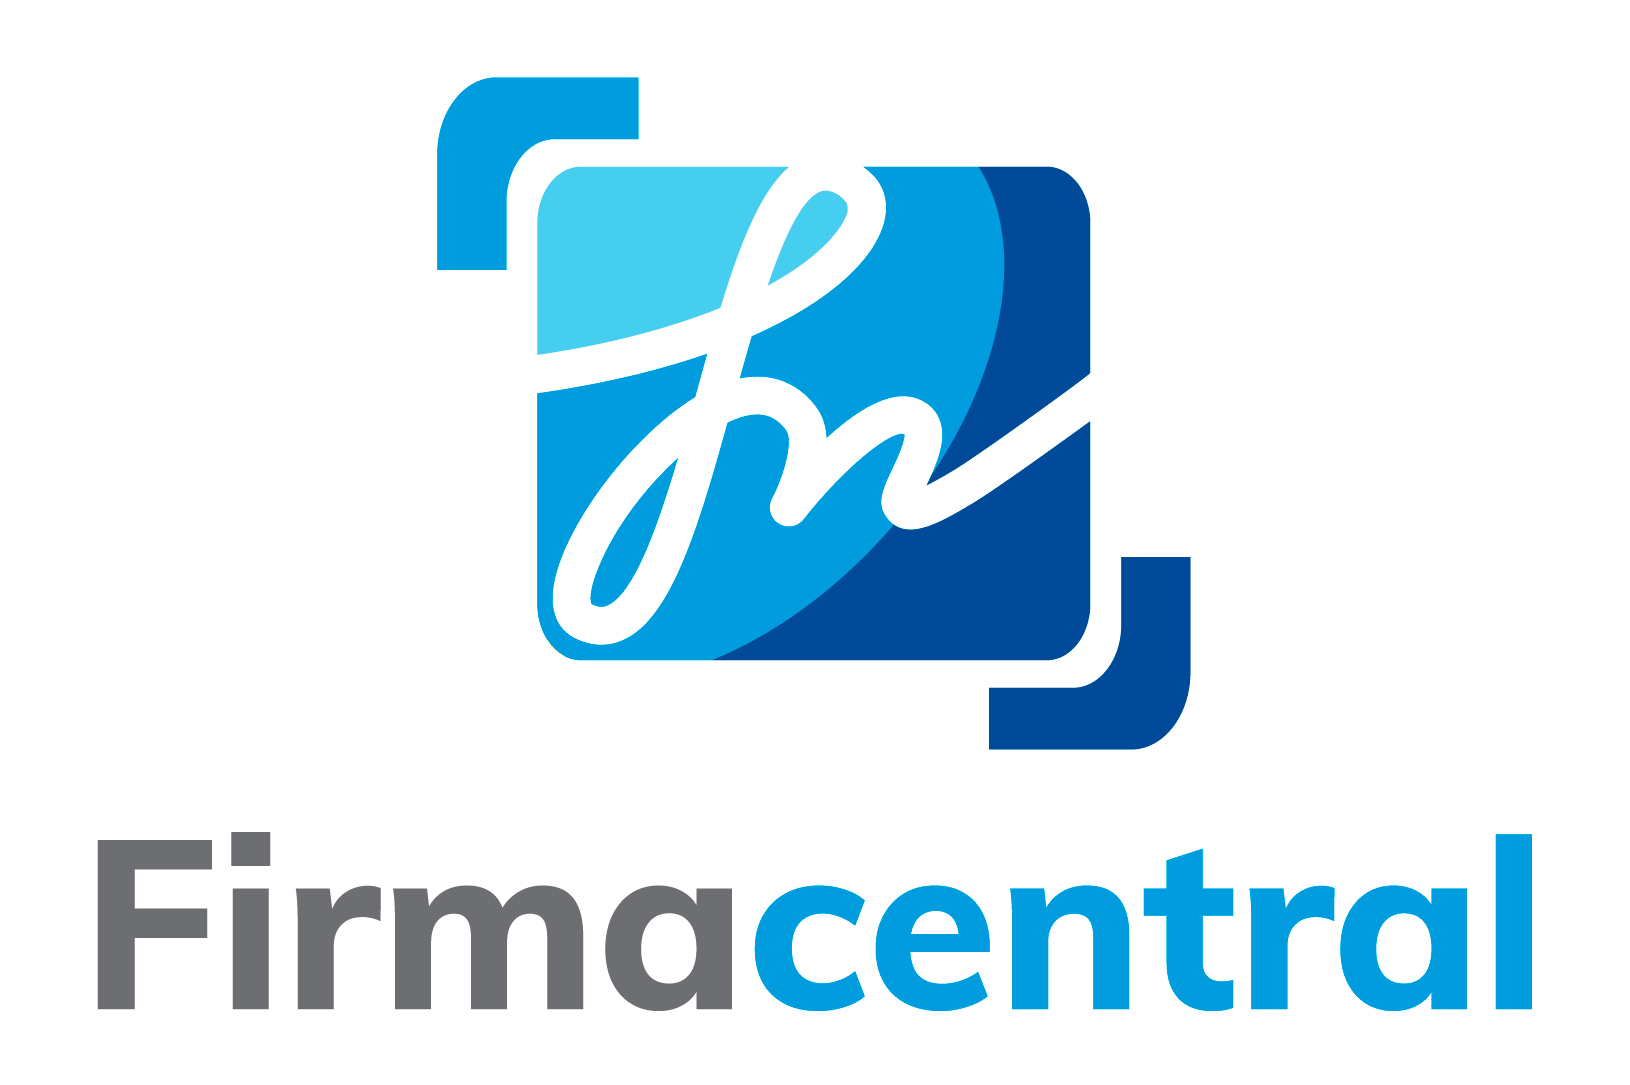 Logotipo Firmacentral